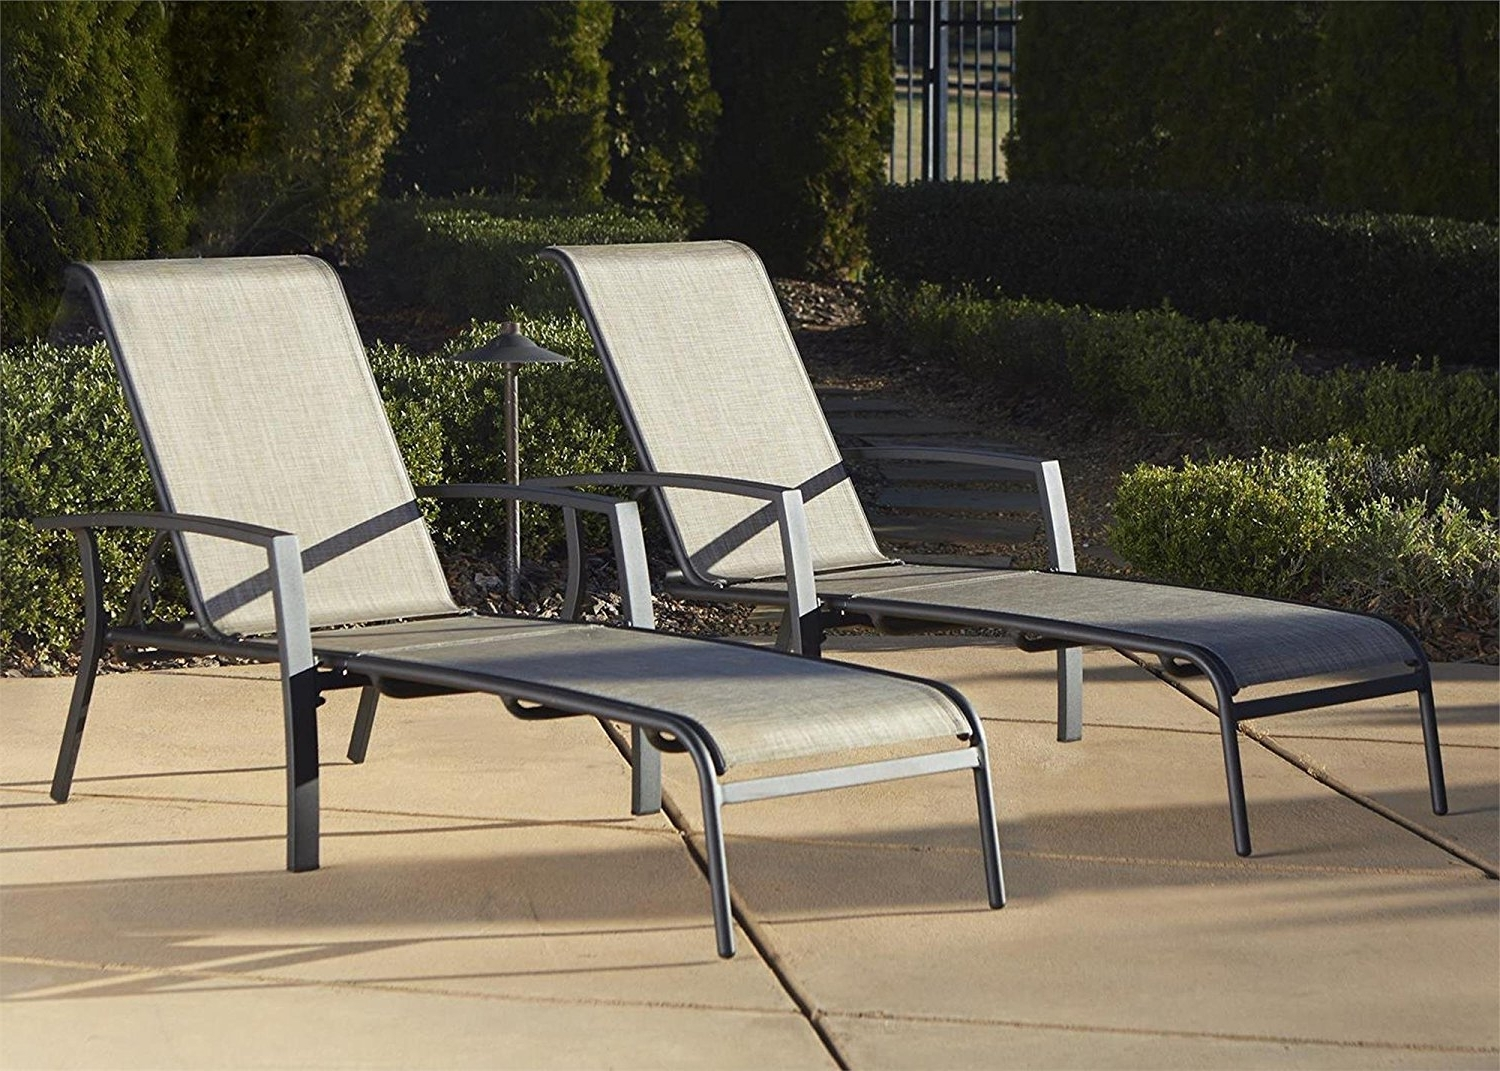 Outdoor Cast Aluminum Chaise Lounge Chairs For Newest Amazon: Cosco Outdoor Adjustable Aluminum Chaise Lounge Chair (View 13 of 15)